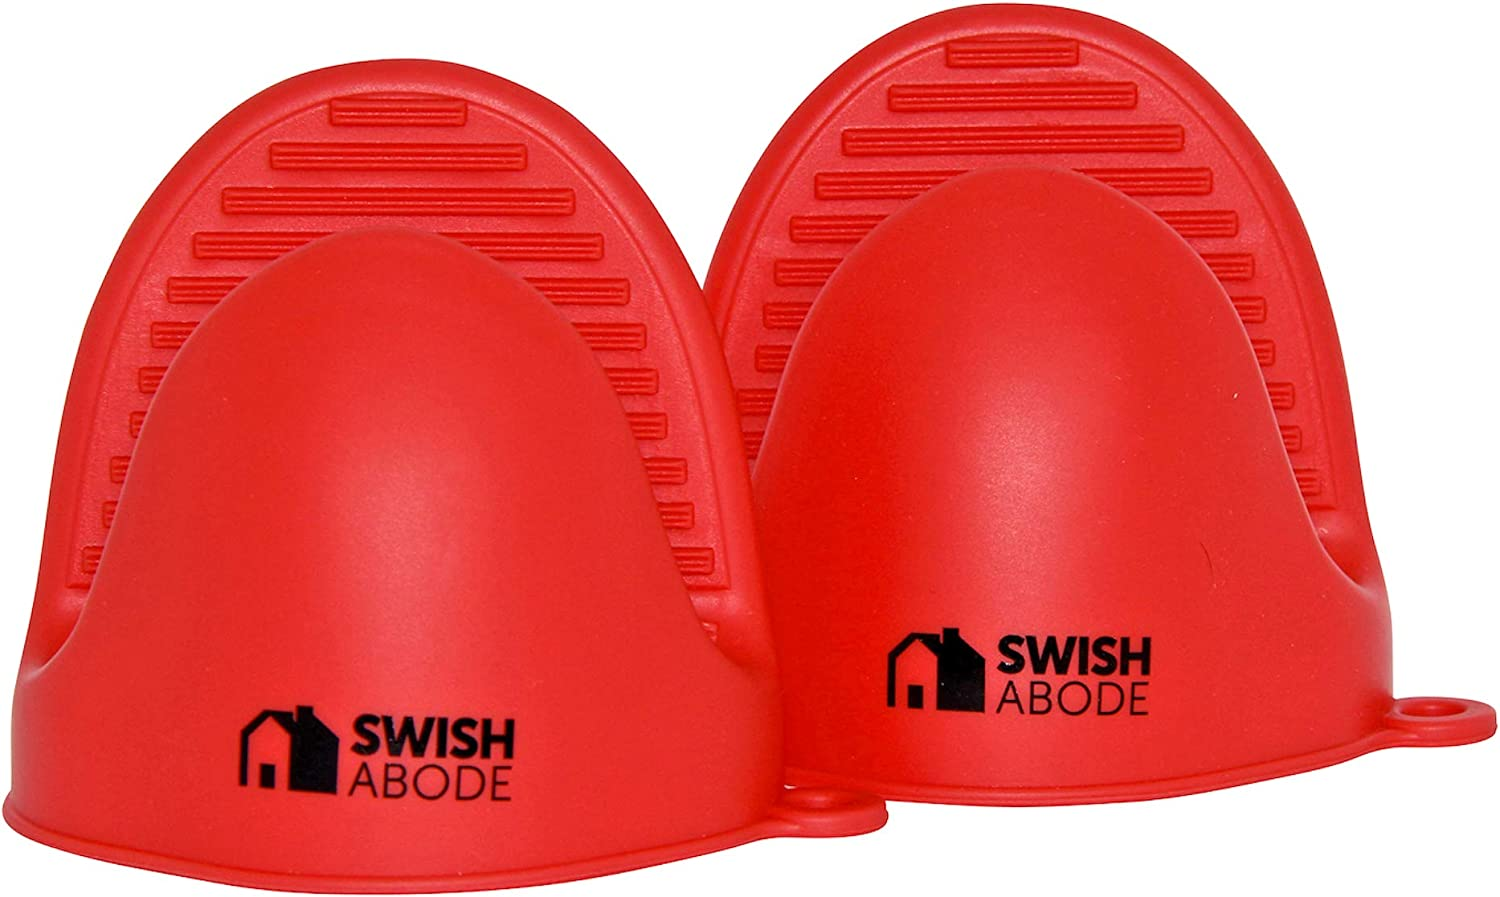 SWISH ABODE New Improved Red Mini Silicone Oven Mitts Set(2) for use with Instant Pot or Kitchen use as Potholder or Baking Holder Mini Oven mitt is Sold in a Pair and Holders are Also Pinch Mitts